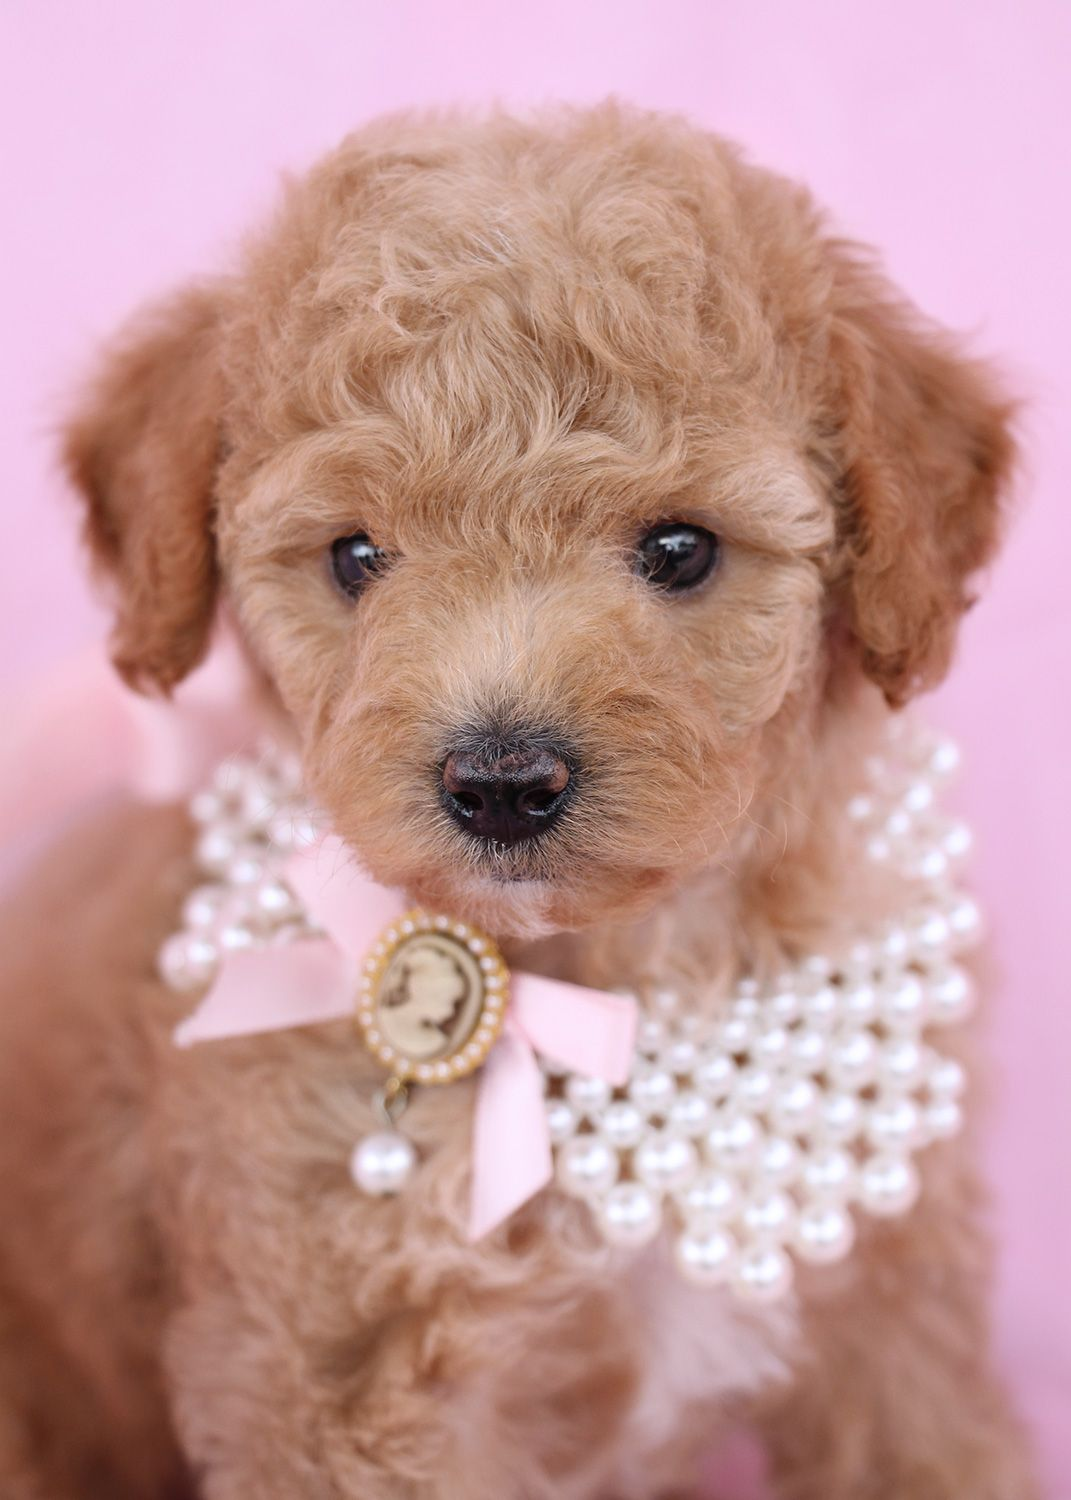 Beautiful Poodle Puppy by TeaCup Puppies Poodle puppies